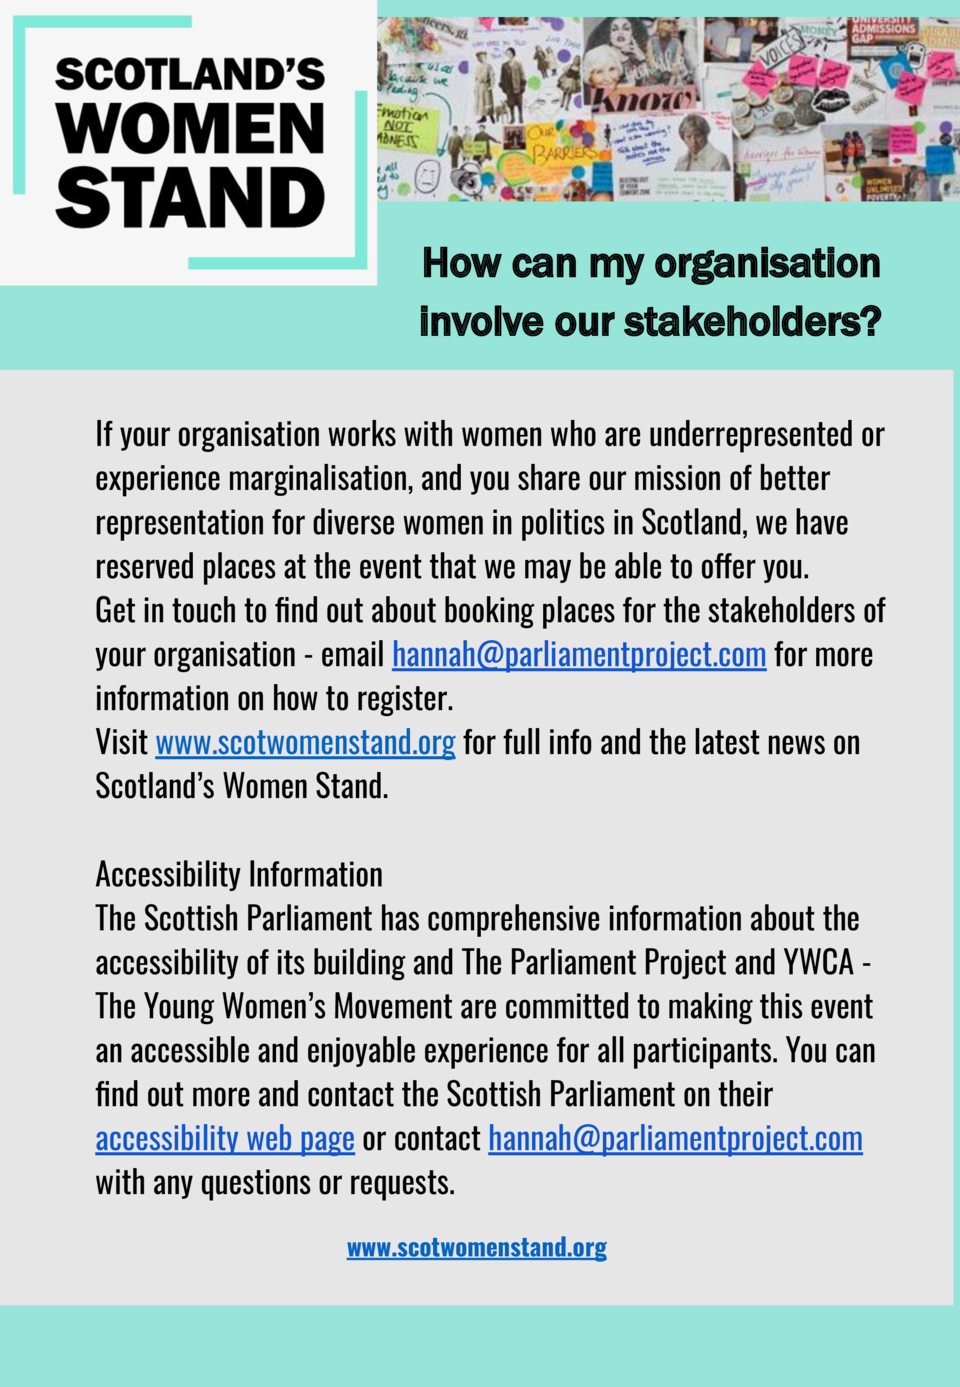 How can my organisation involve our stakeholders  If your organisation works with women and you share our mission of bette...